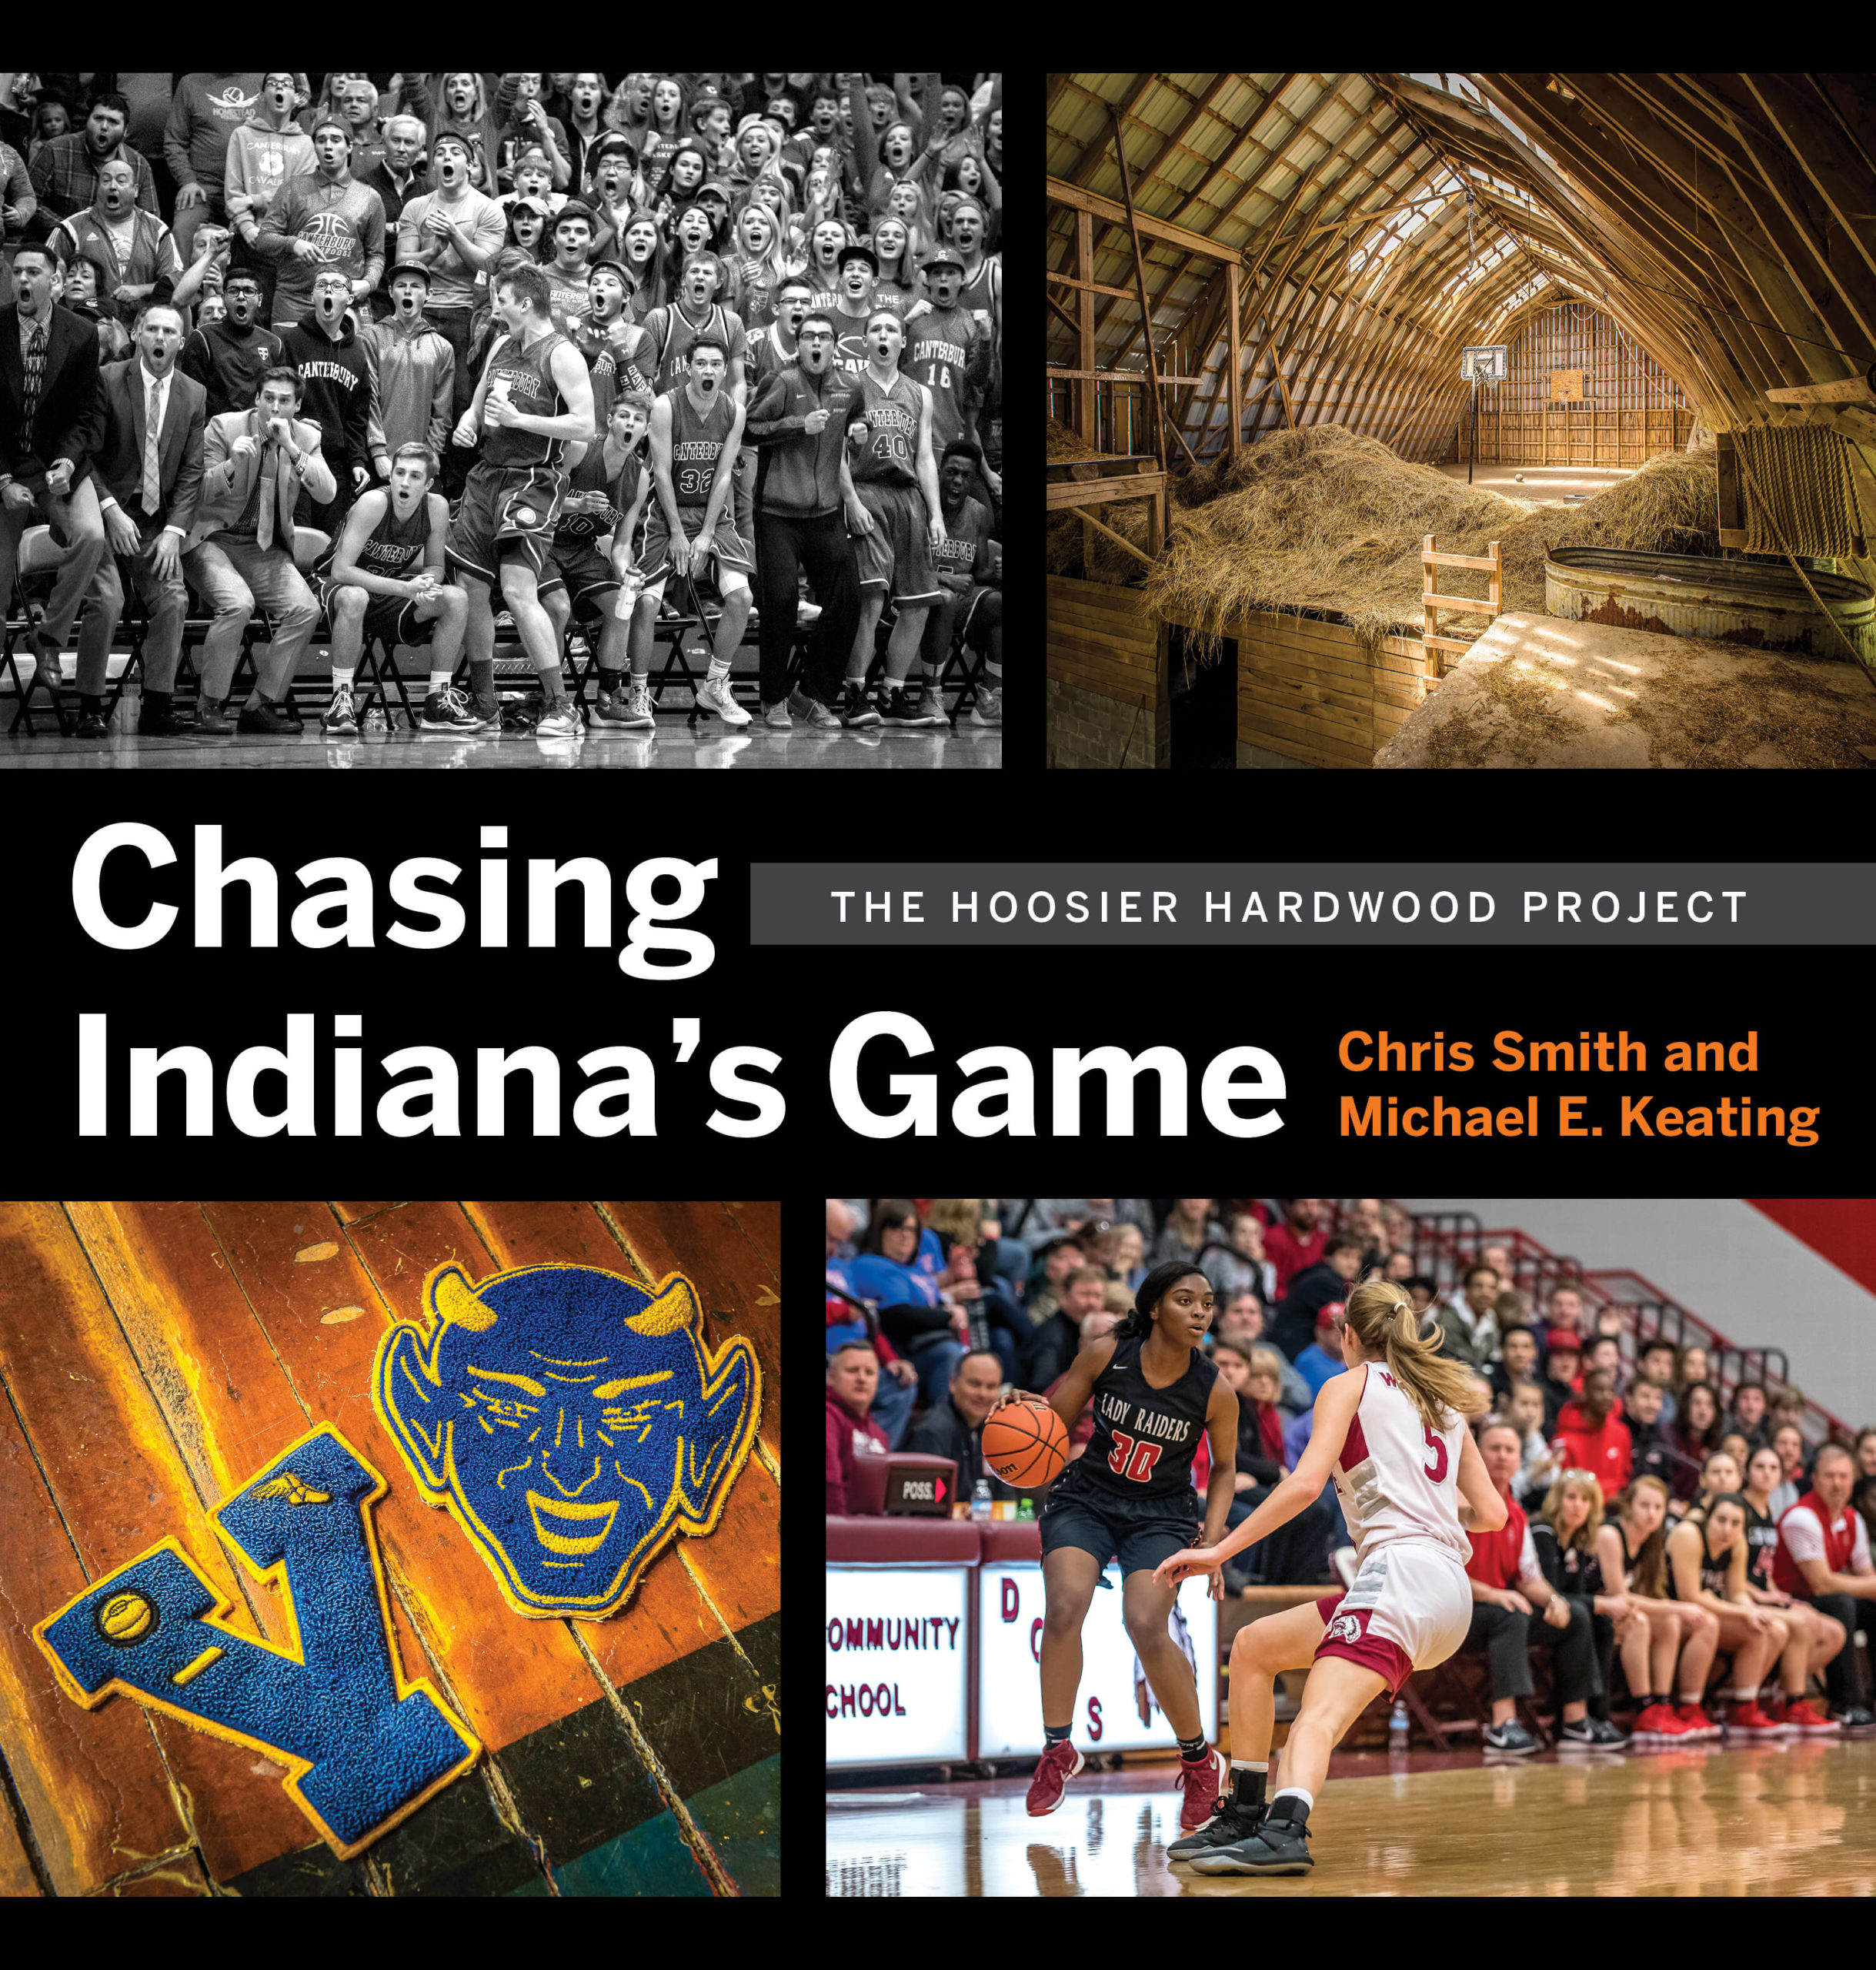 Chasing Indiana